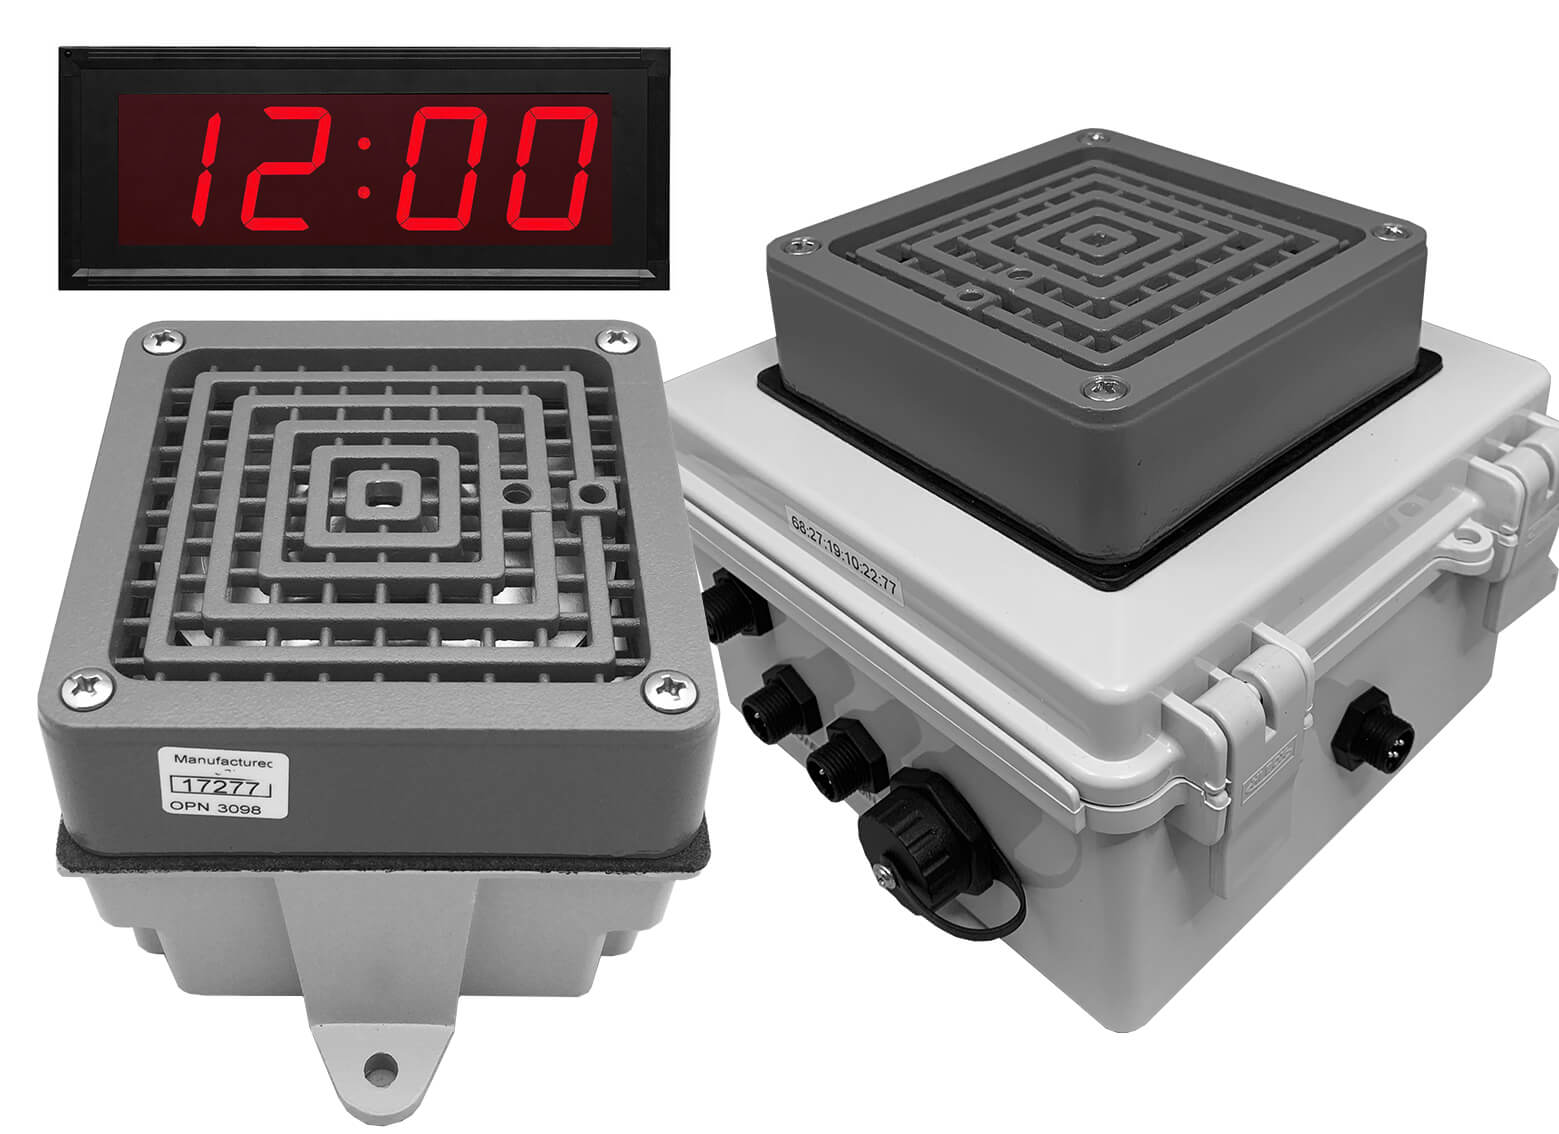 Netbell-KB-E1-C Network All-in-One Extra Loud Break Buzzer Clock System (2 Buzzers System)